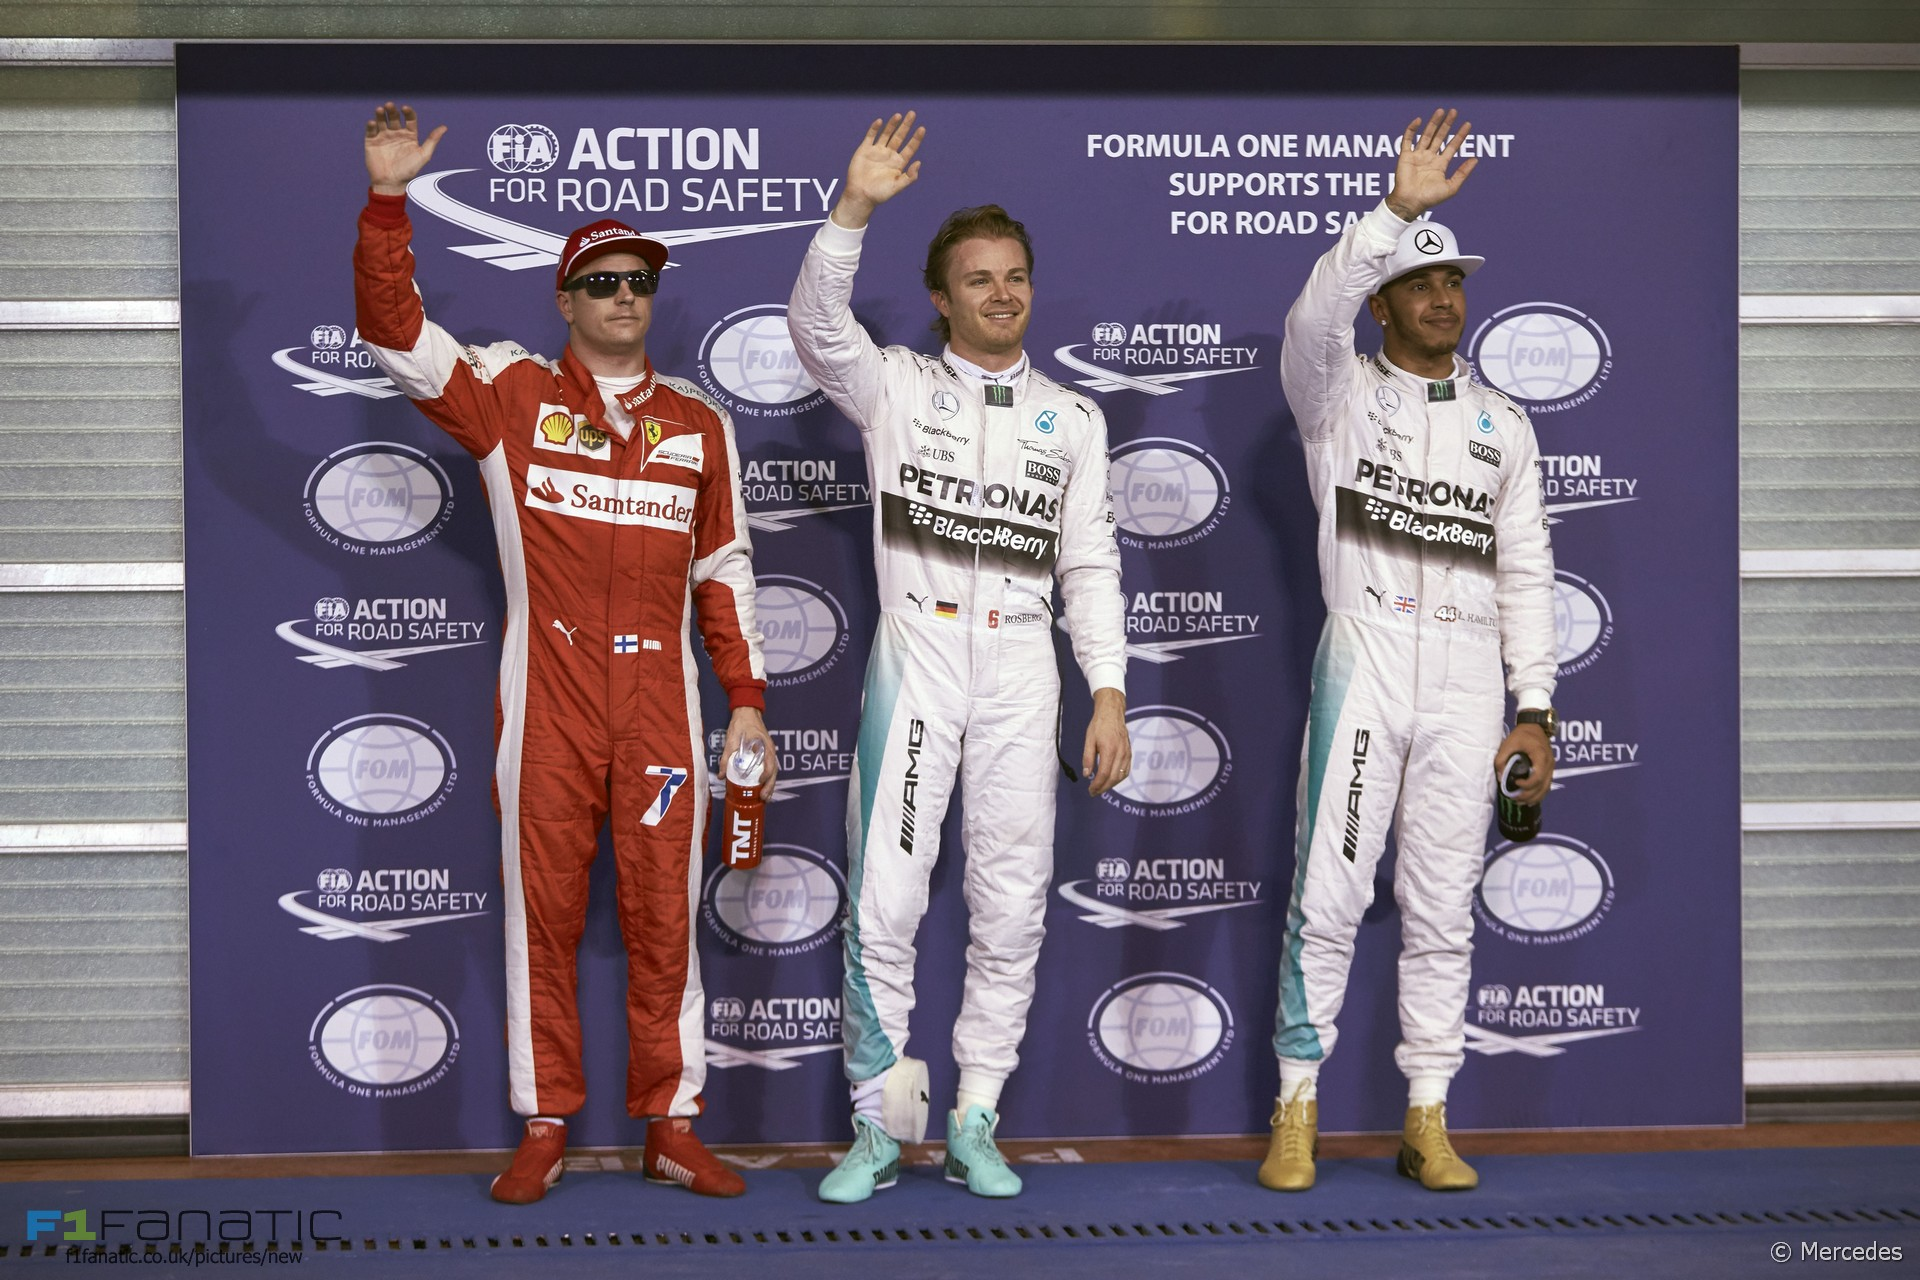 Fia Announces Elimination Qualifying And Driver Of The Day Award F1 Fanatic